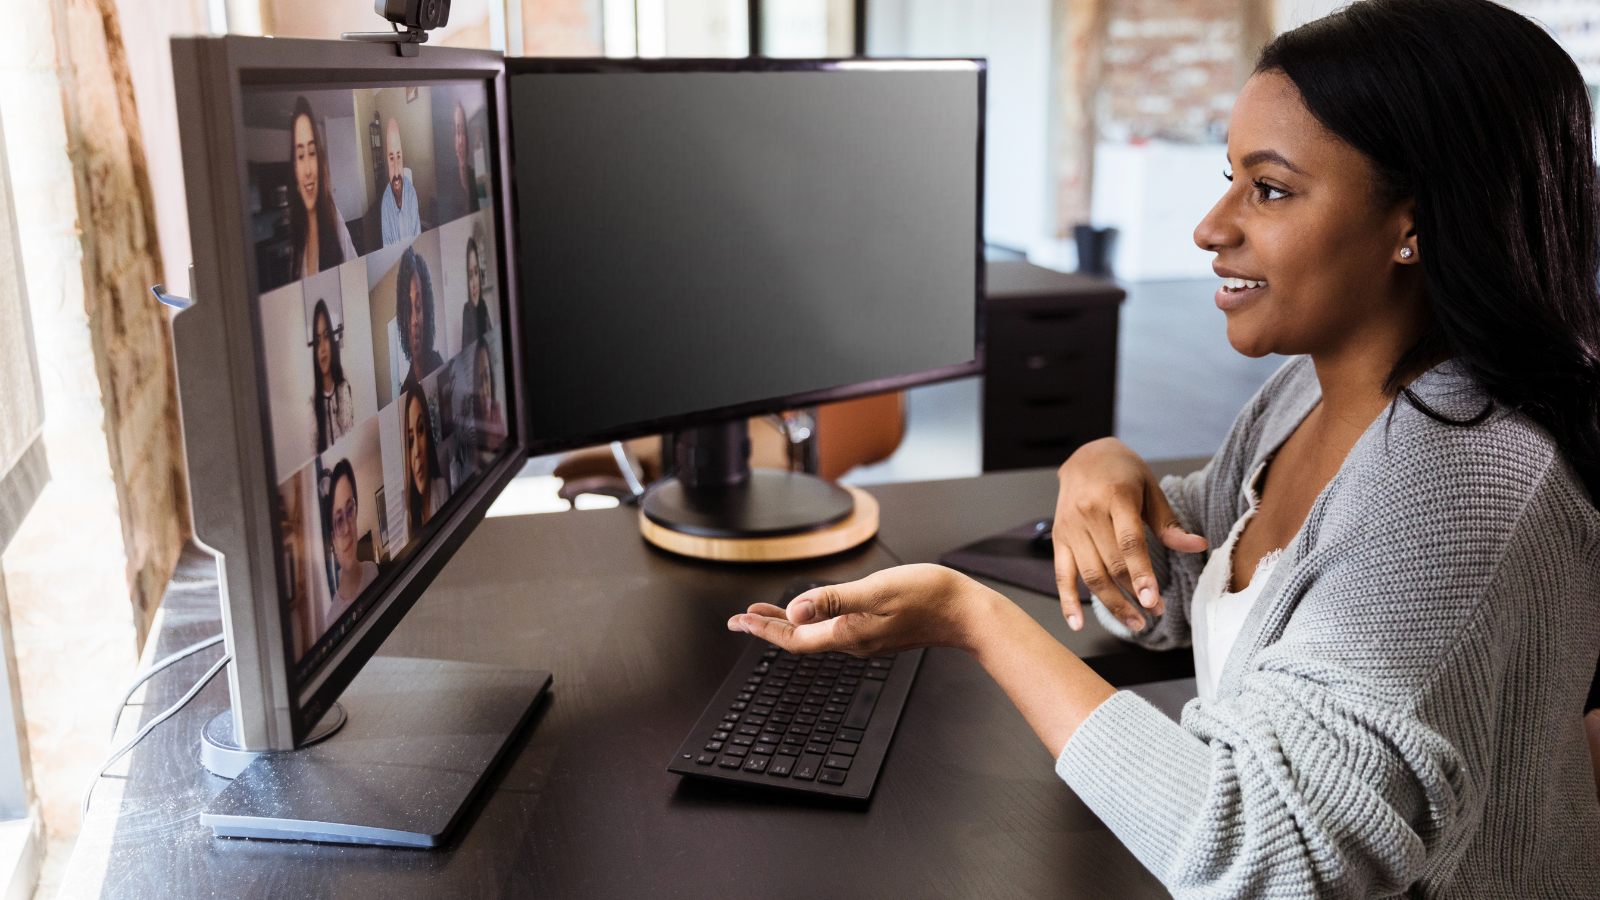 A young woman of color on a video call with her ovarian cancer support group